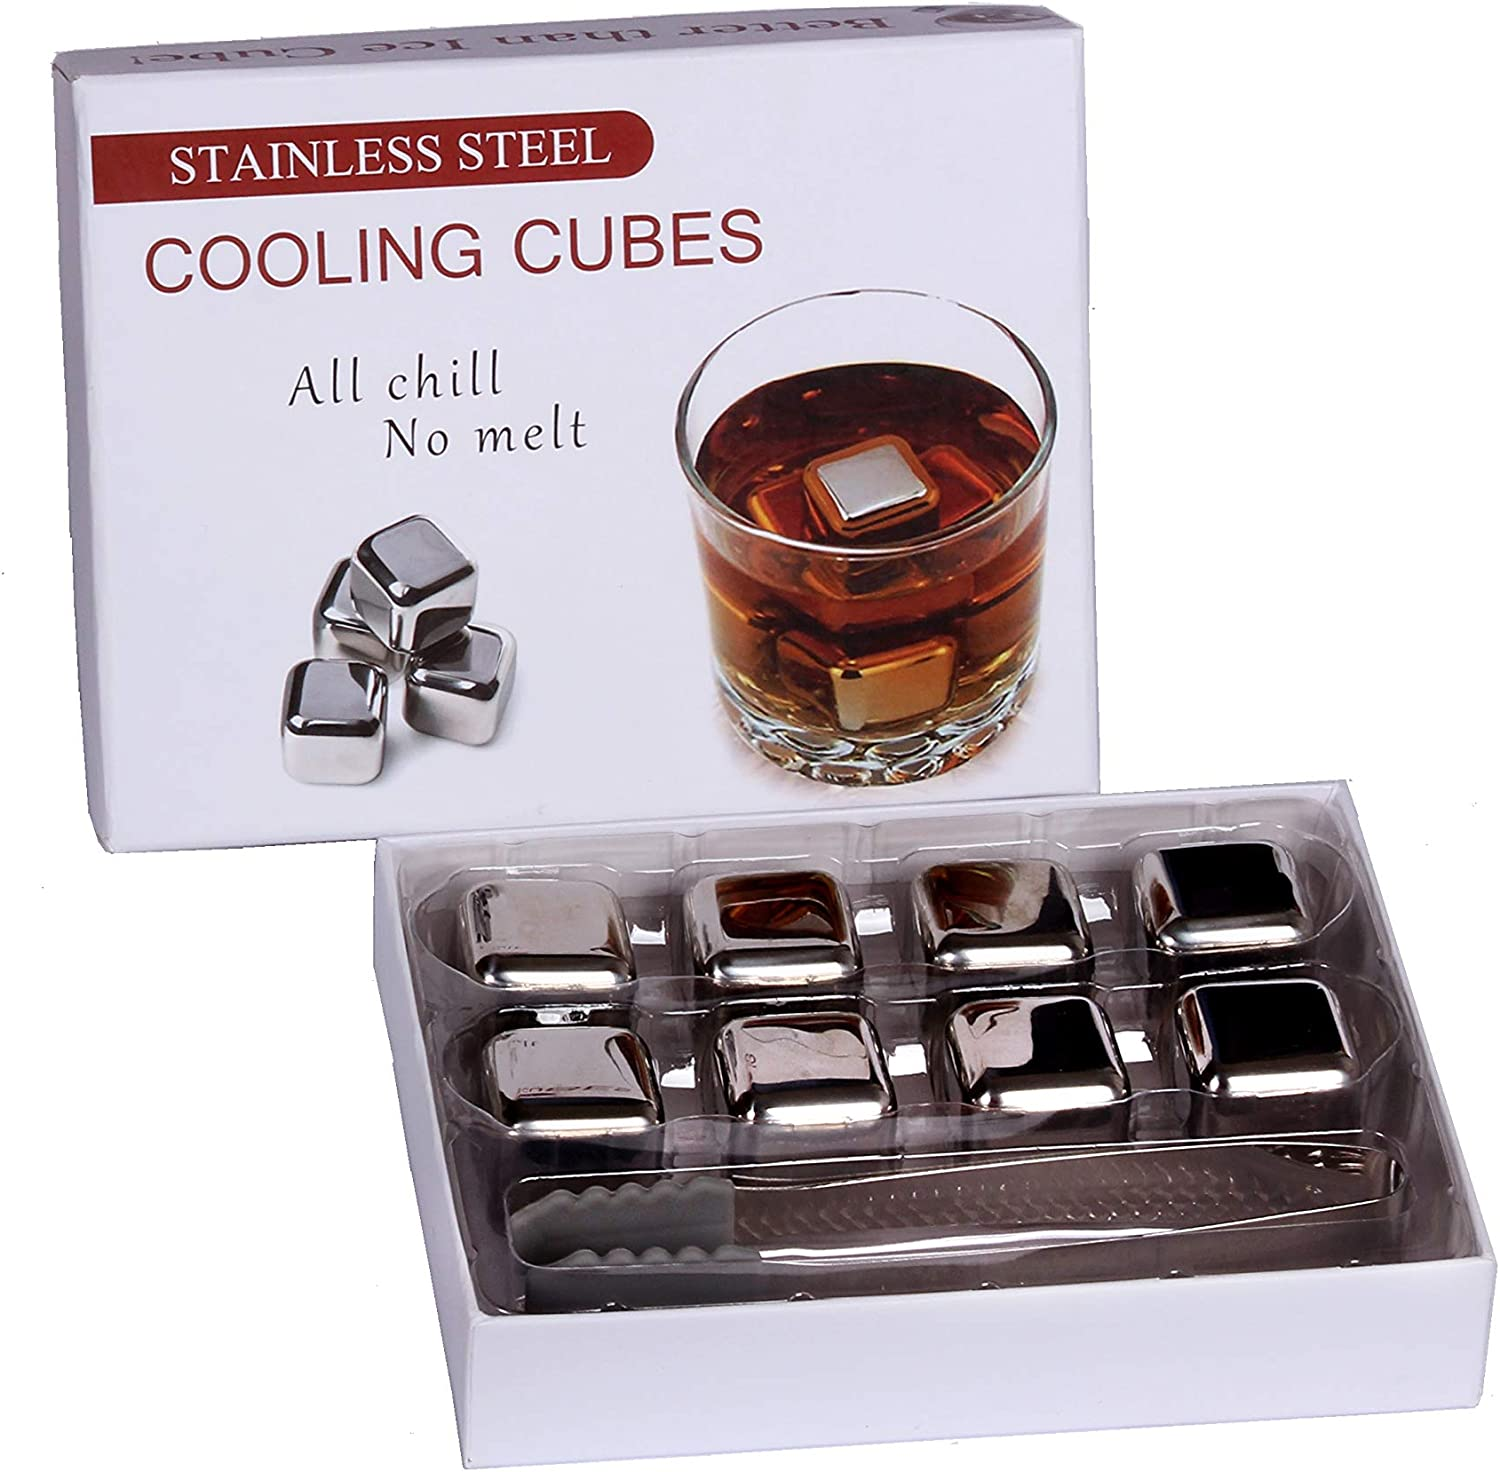 Stainless Steel 8-Piece Cooling Cubes